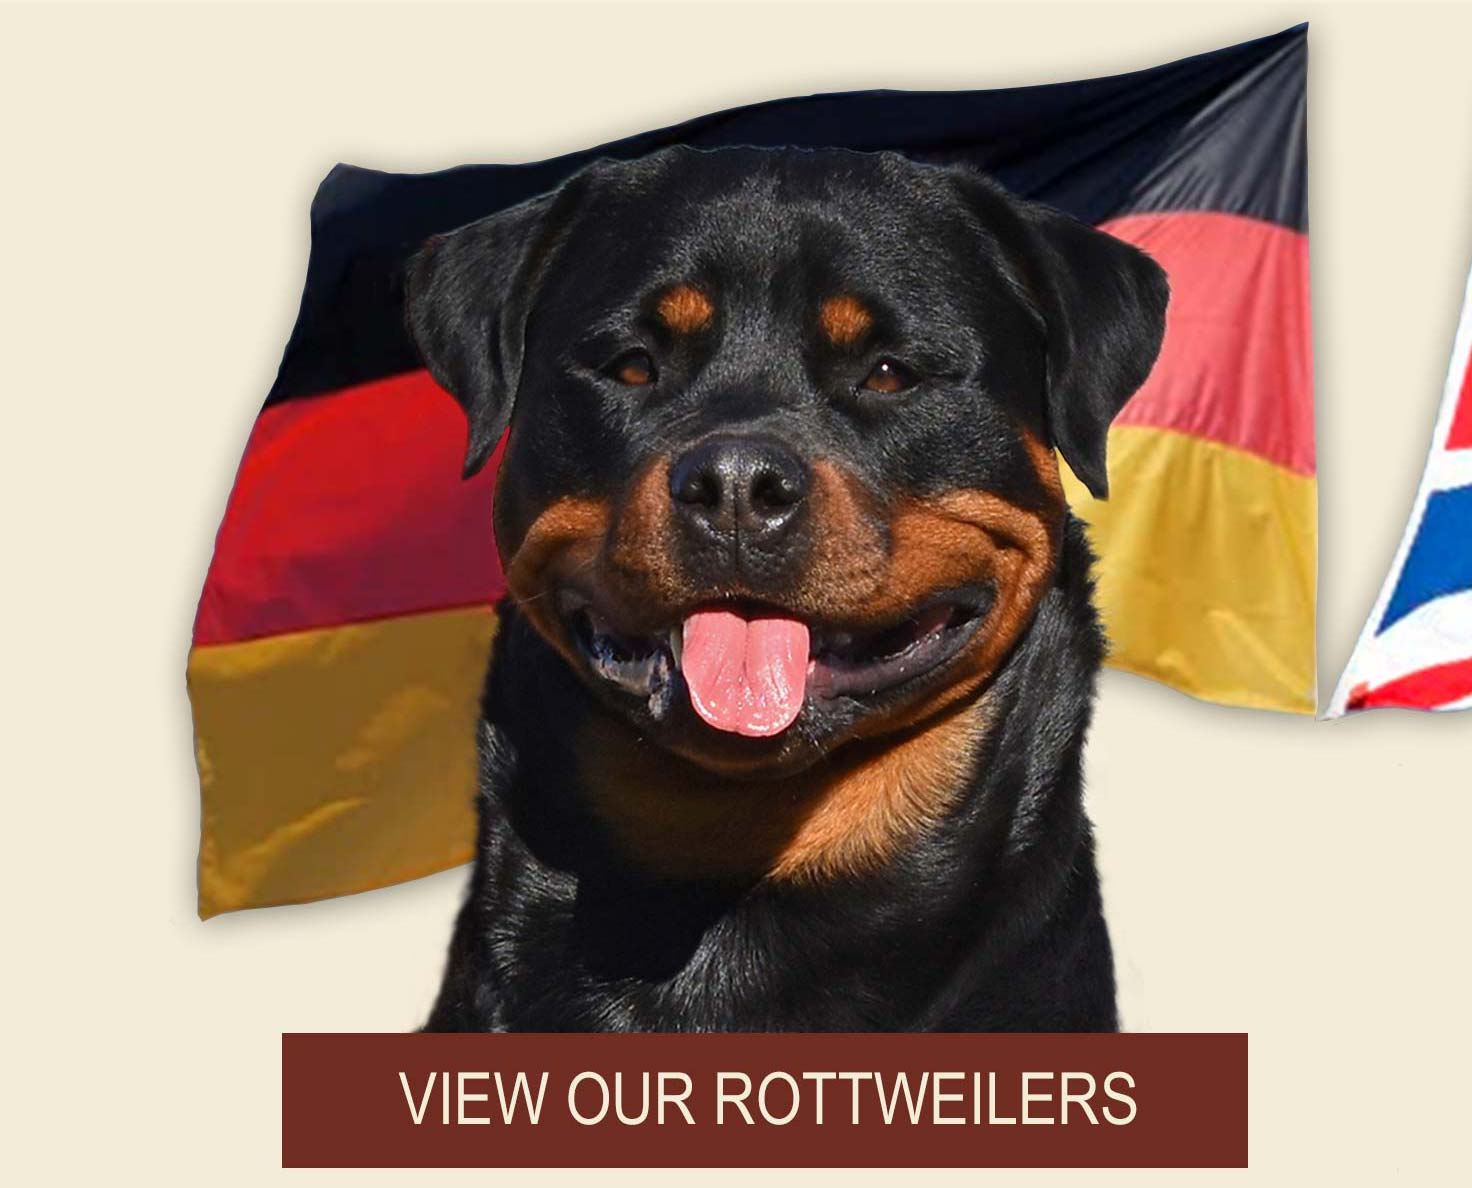 View our Rottweilers